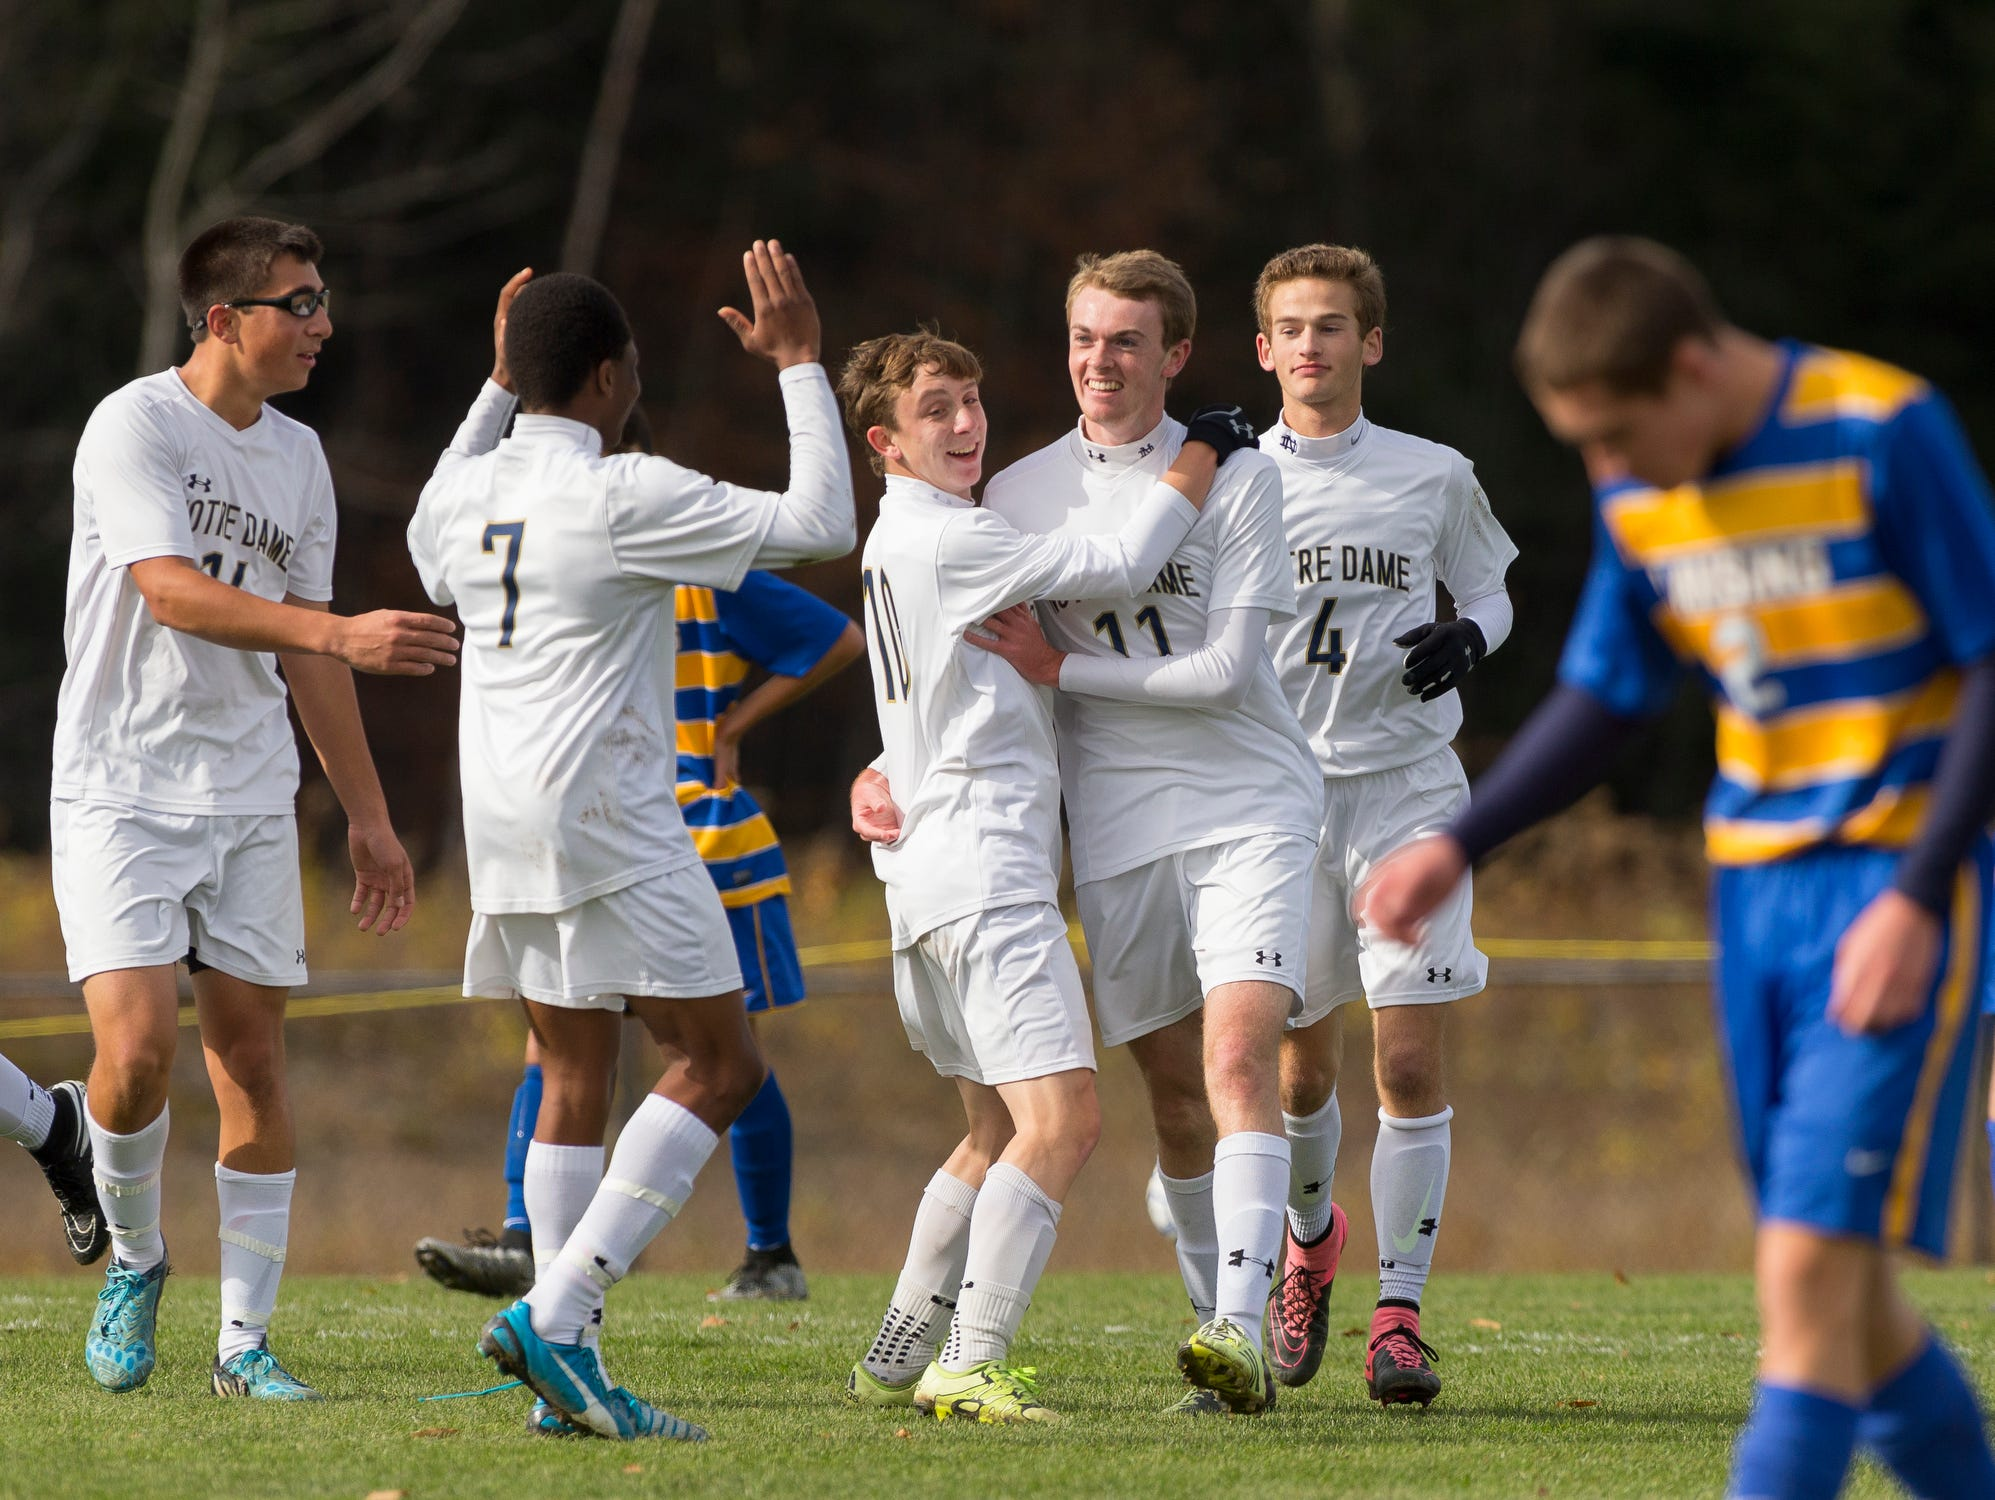 Notre Dame players celebrate their second goal on their way to winning the Section IV Class C soccer championship Saturday in Oneonta. From left, Connor Bayne, Aidan Sharma, Rocco Coulibaly, Michael Woglom, Ryan Lanning, Nick Steed, and Lansing's Ben Kutler.